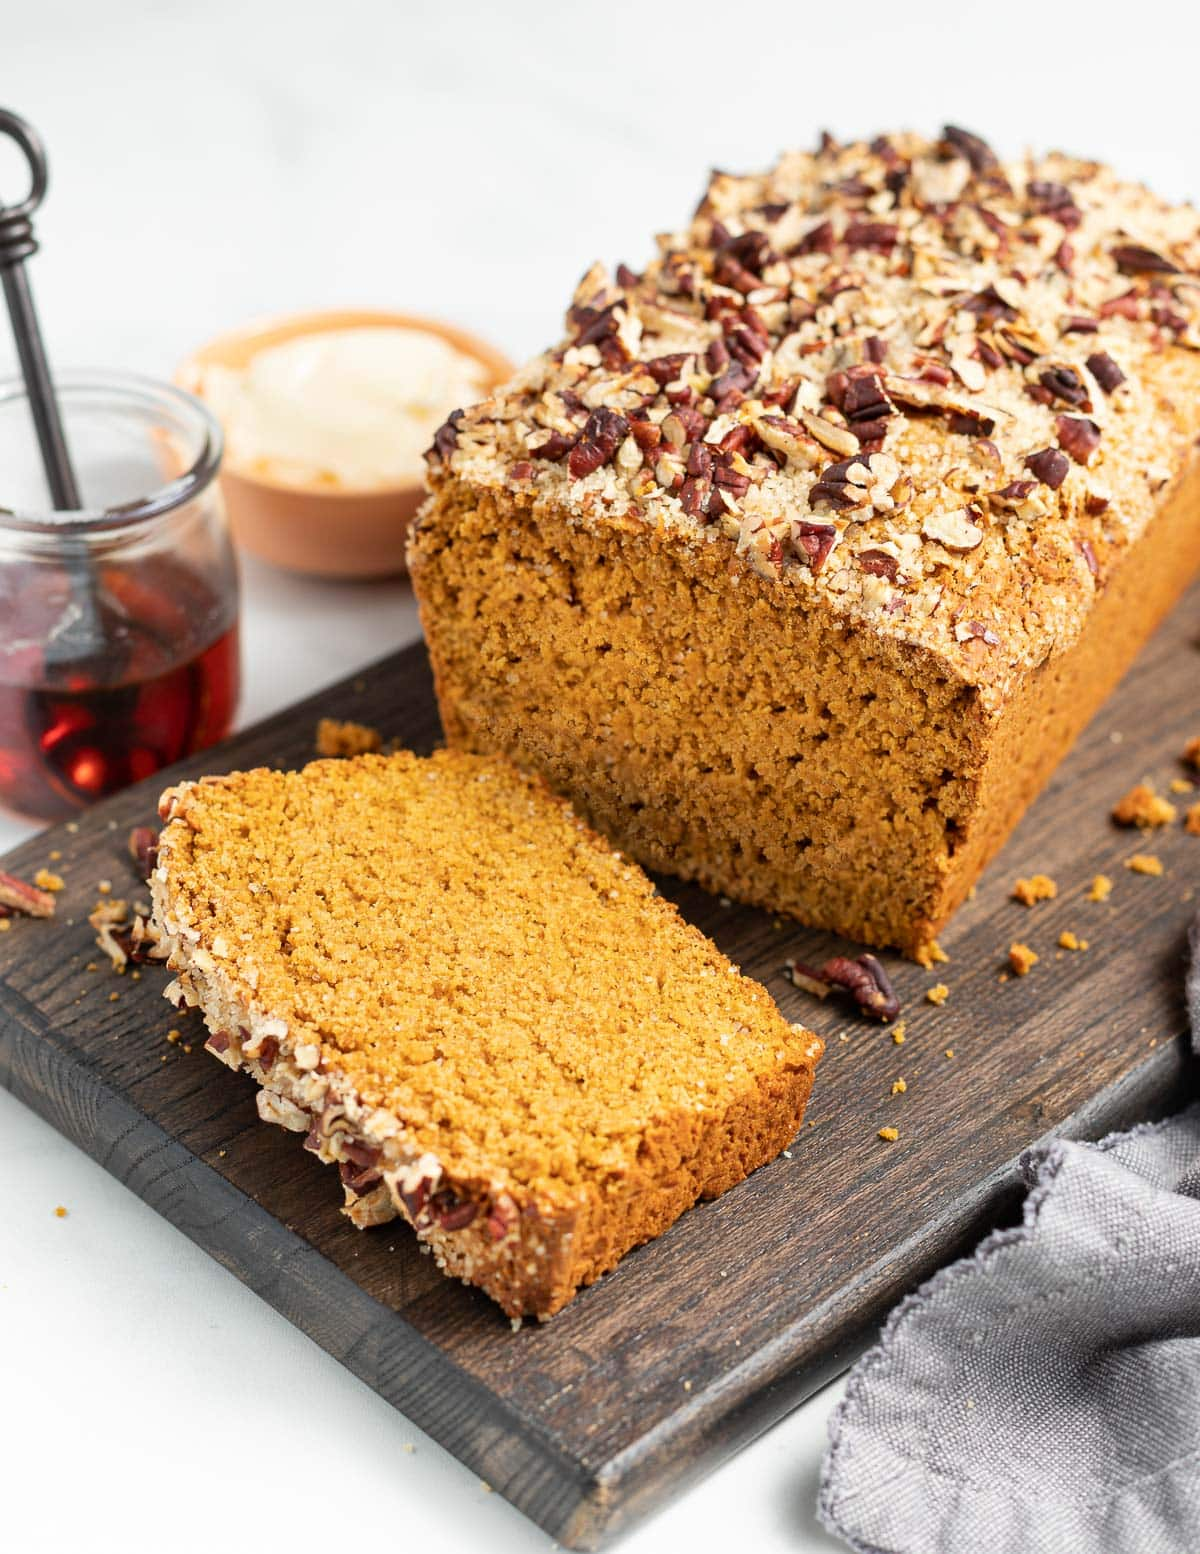 a loaf of gluten-free sweet potato bread with the end cut off